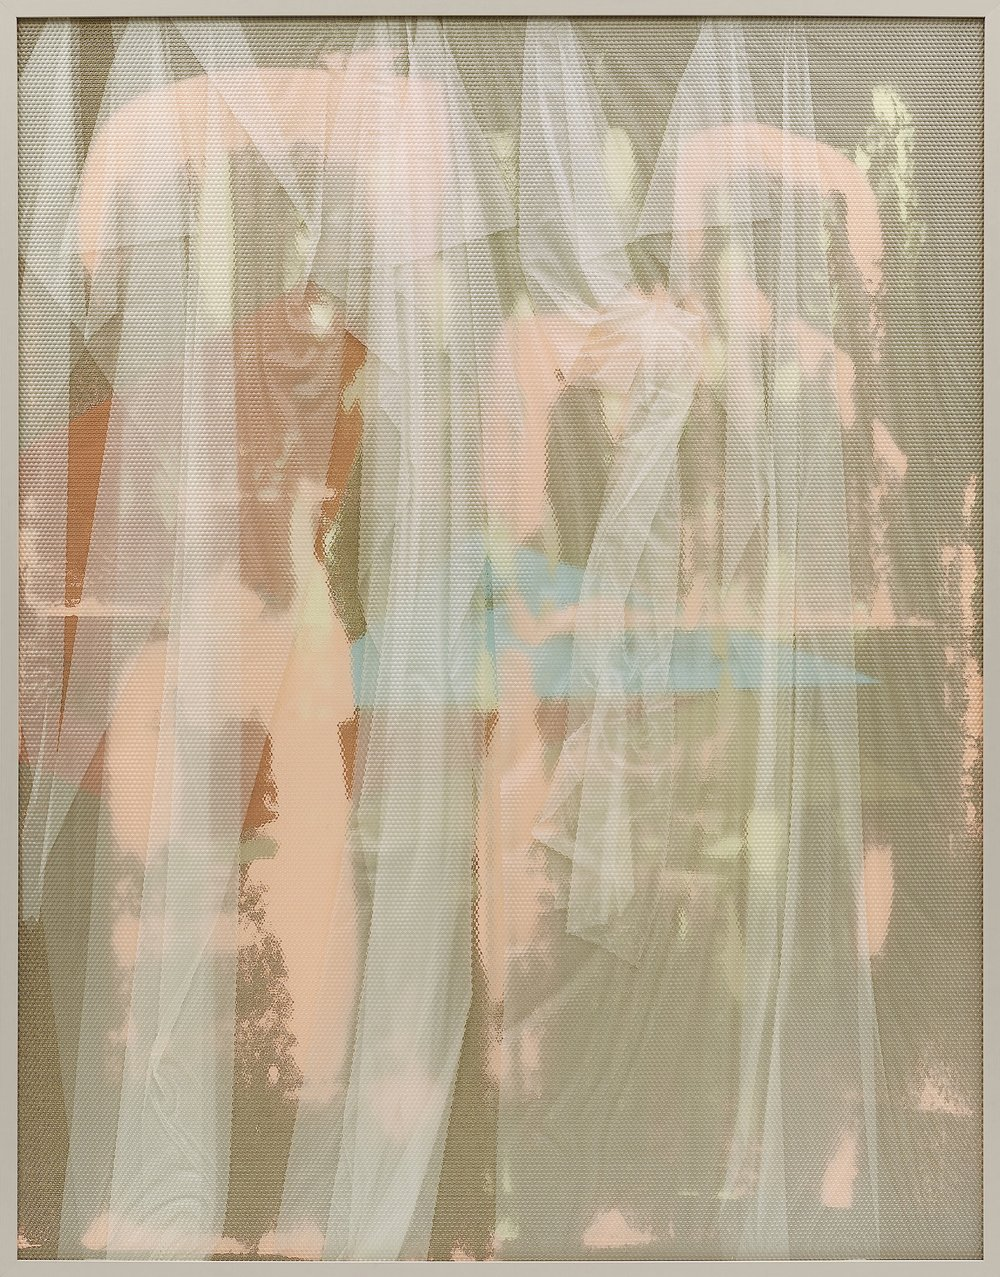 Eidolon / Part VI (2013) Oil, acrylic and latex on canvas beneath textured Plexiglas. 180 x 140 cm (71 x 55 in.)